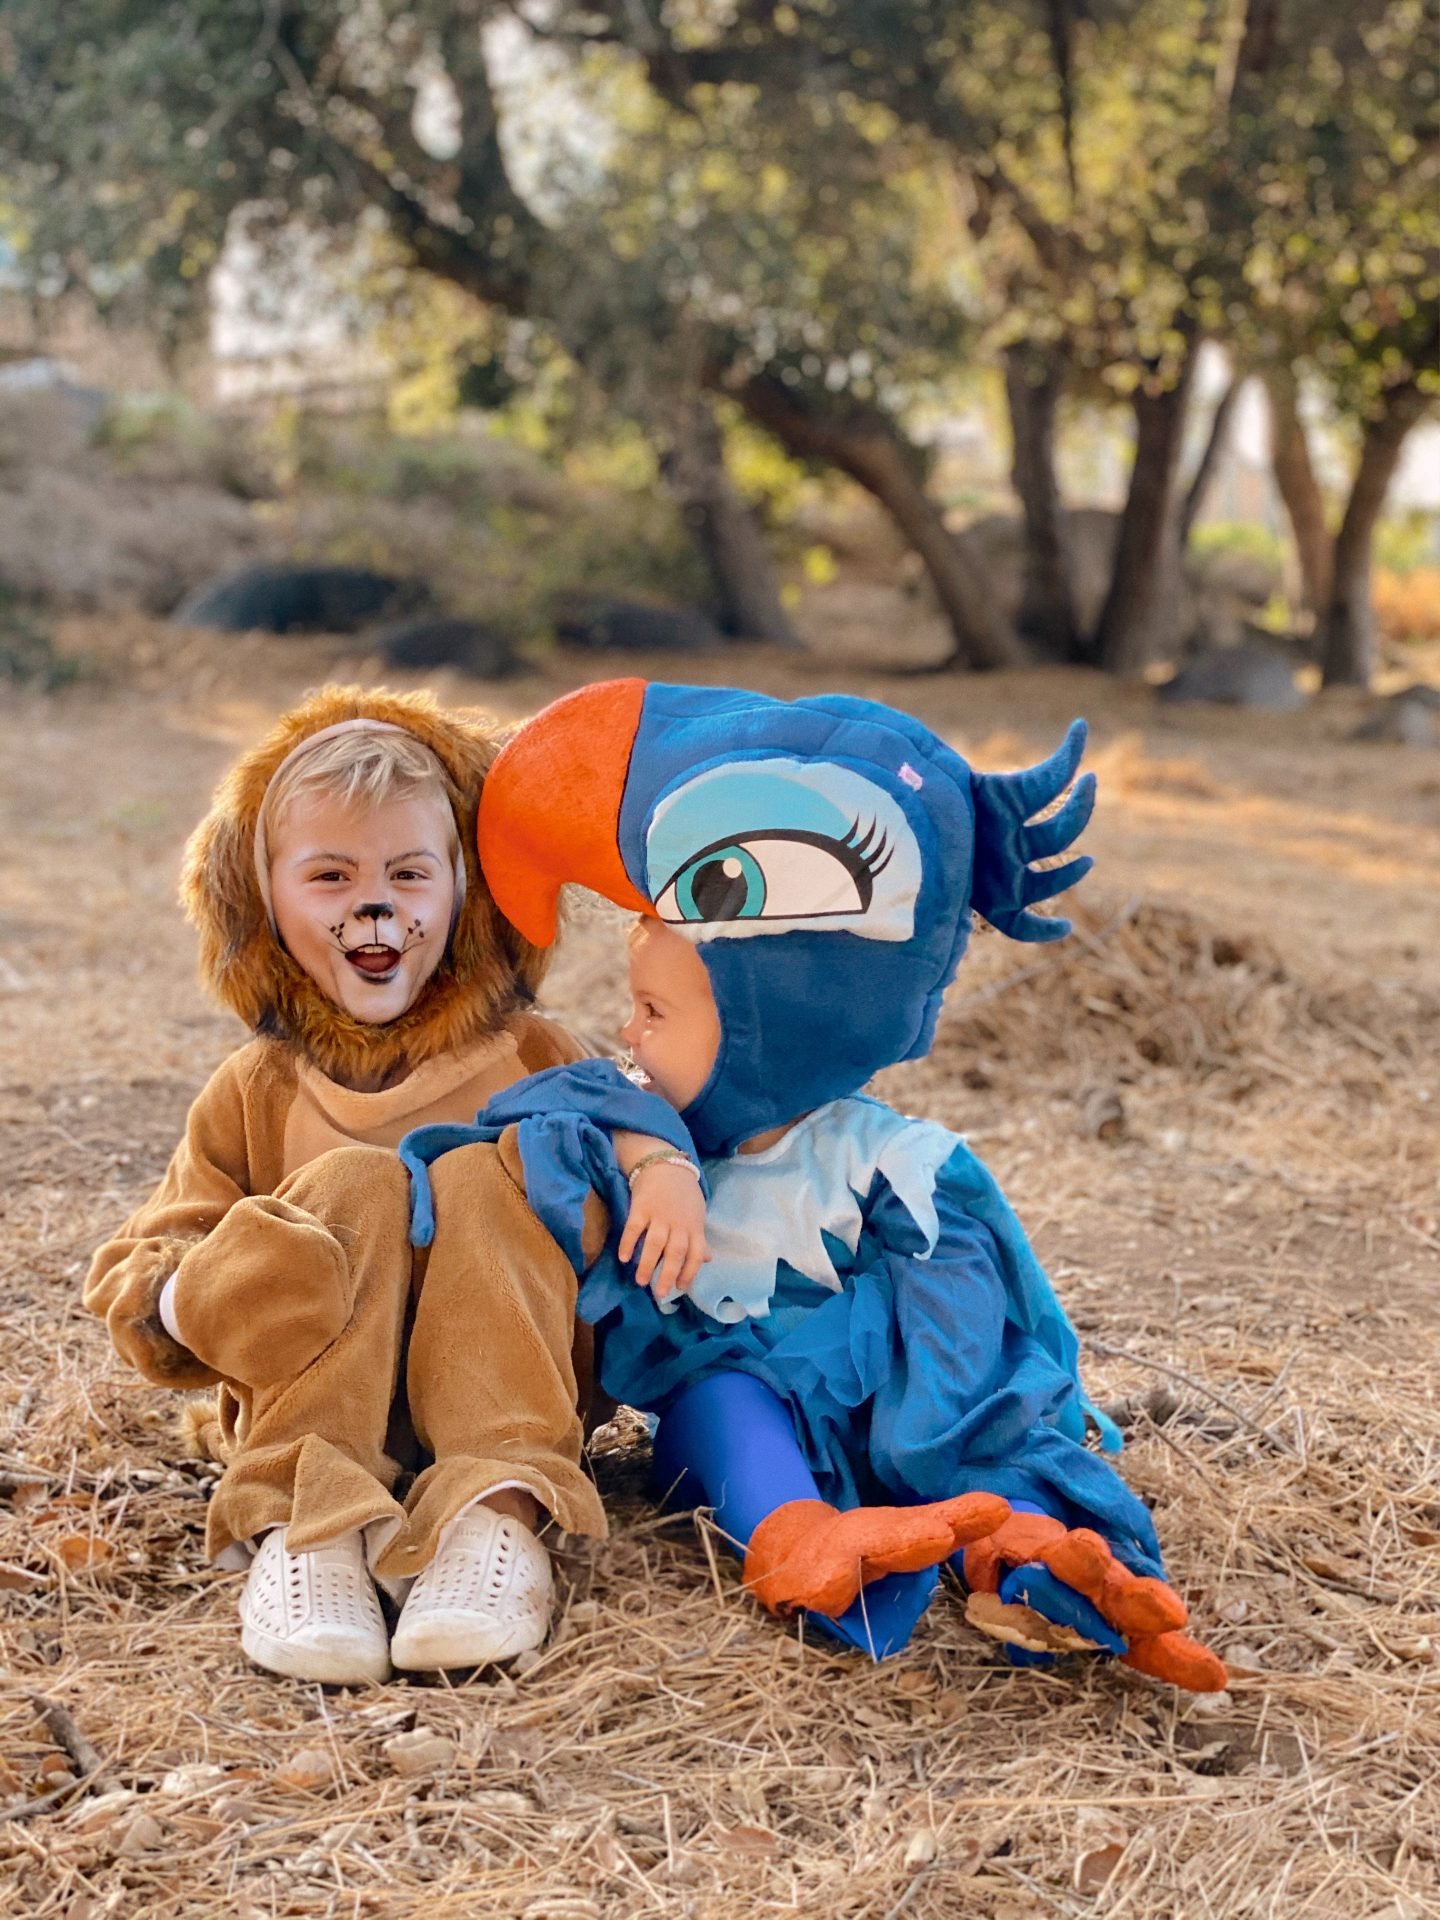 Family Halloween Costumes by popular San Diego lifestyle blog, Navy Grace: image of a boy and girl dressed up as Simba and Zazu from The Lion King.